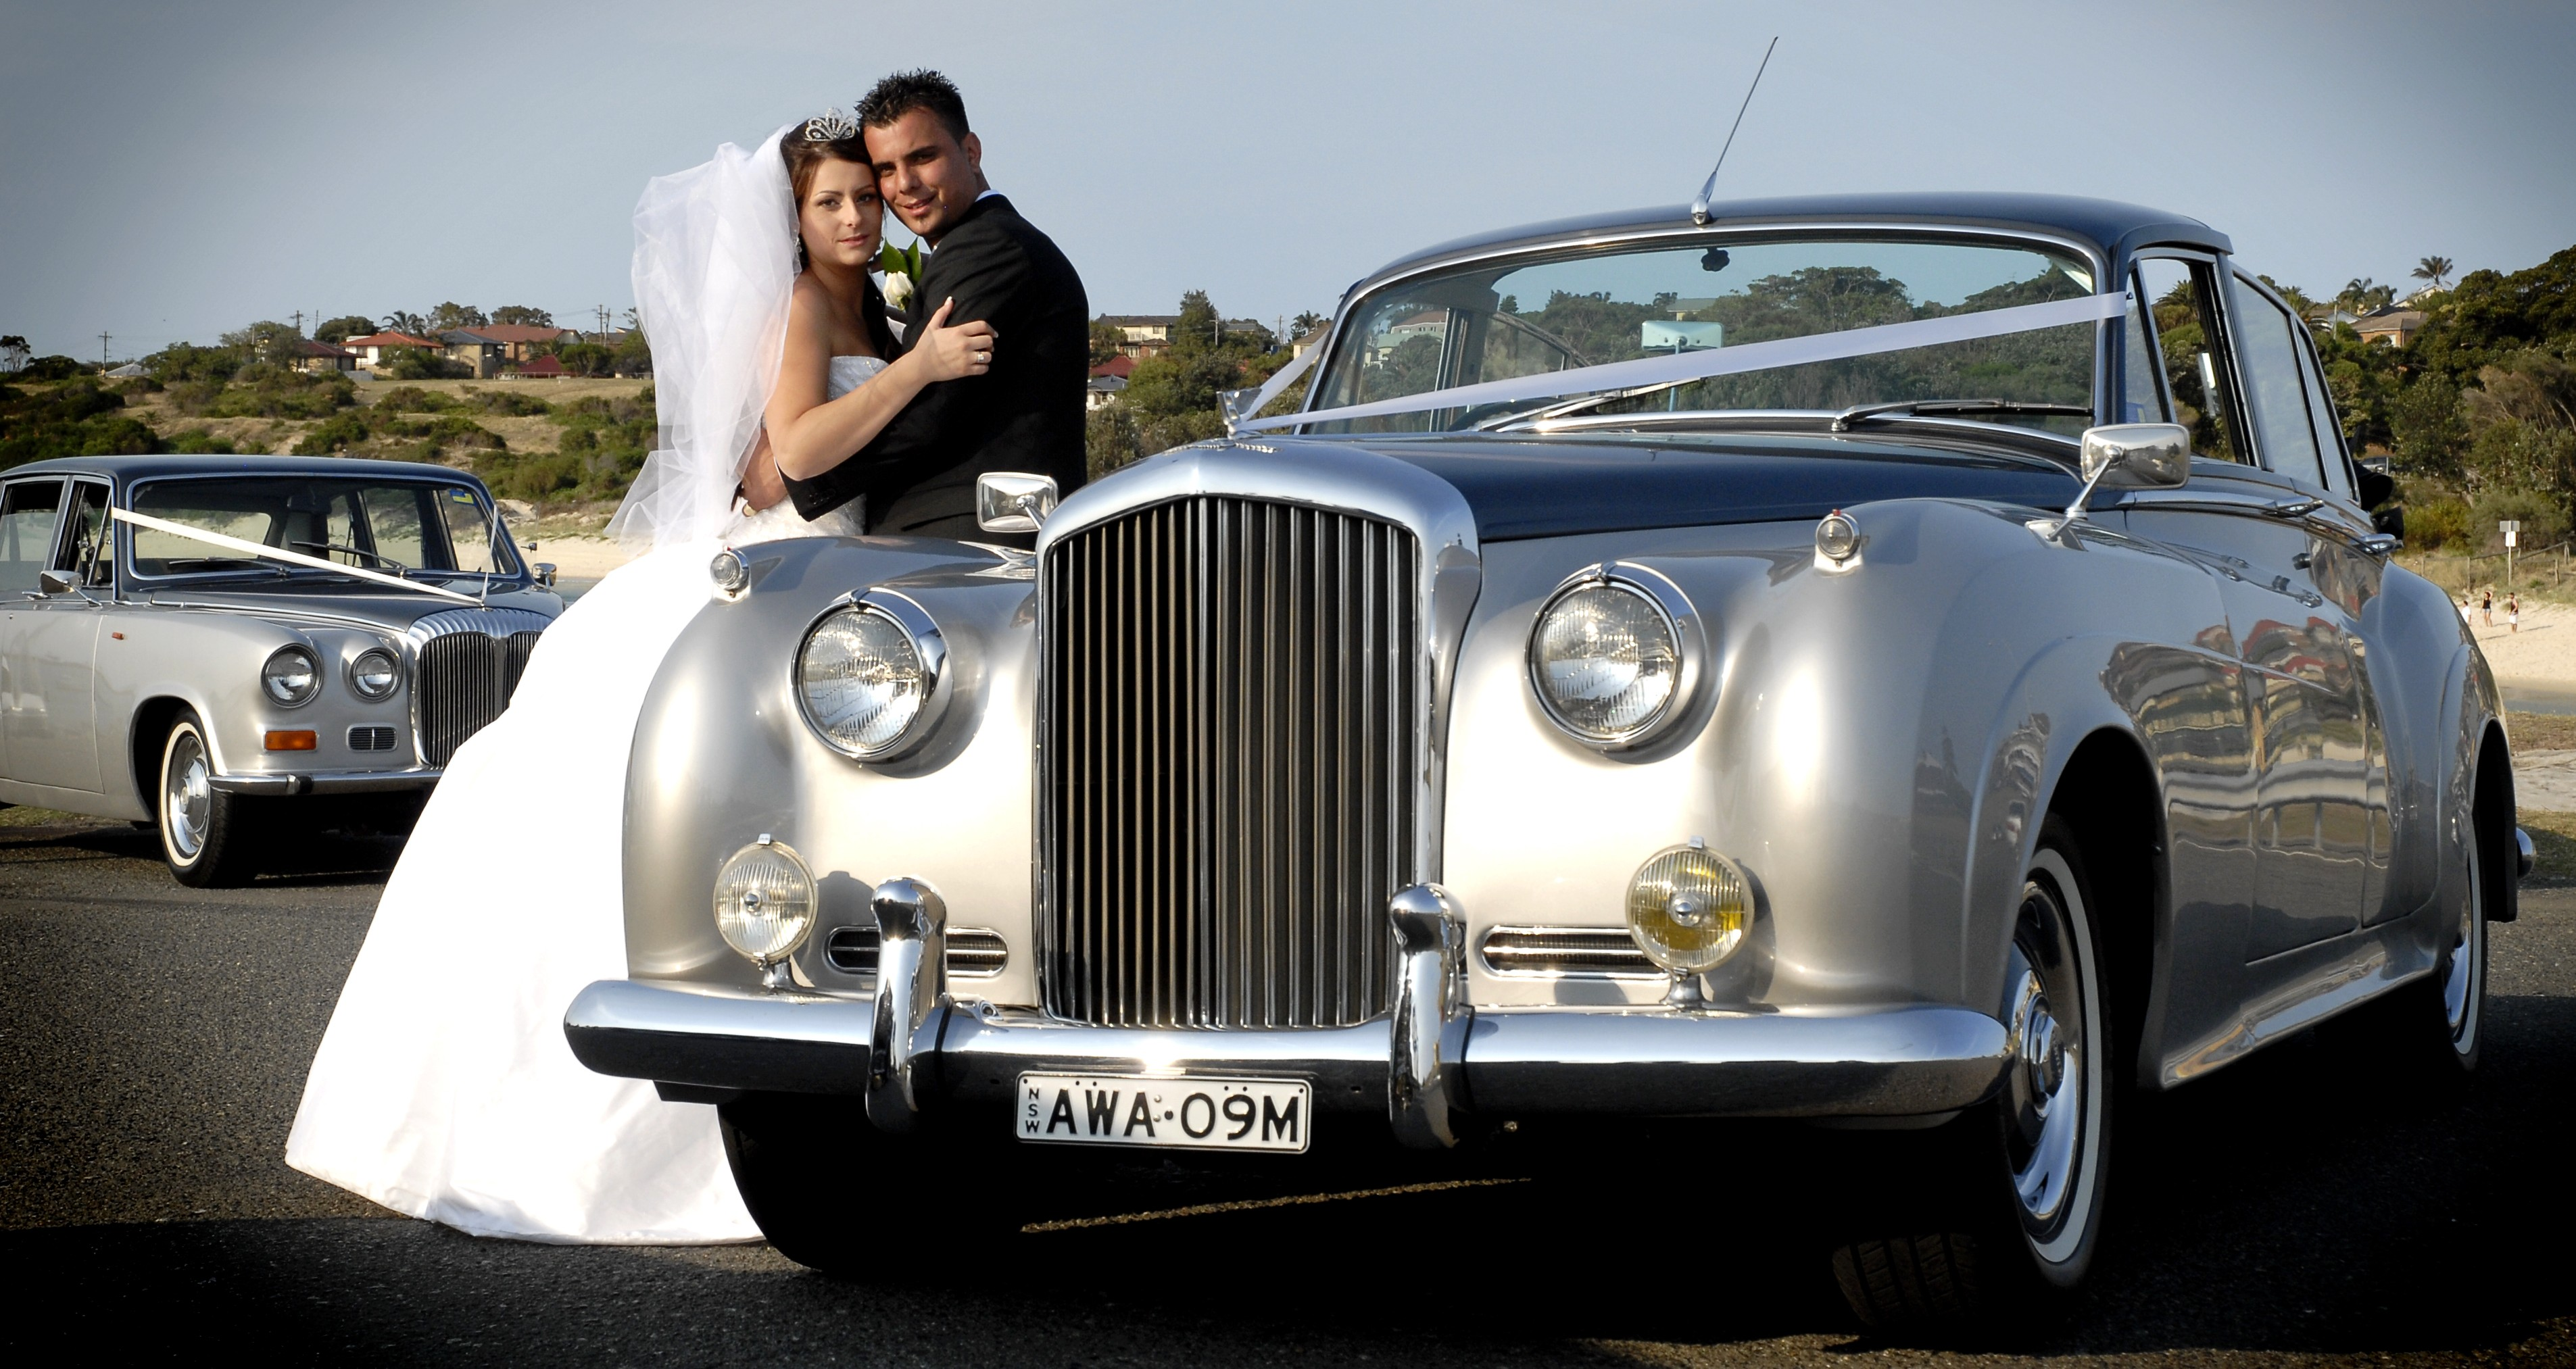 Vintage Car Hire Sydney Weddings - Engagement Rings & Jewellery